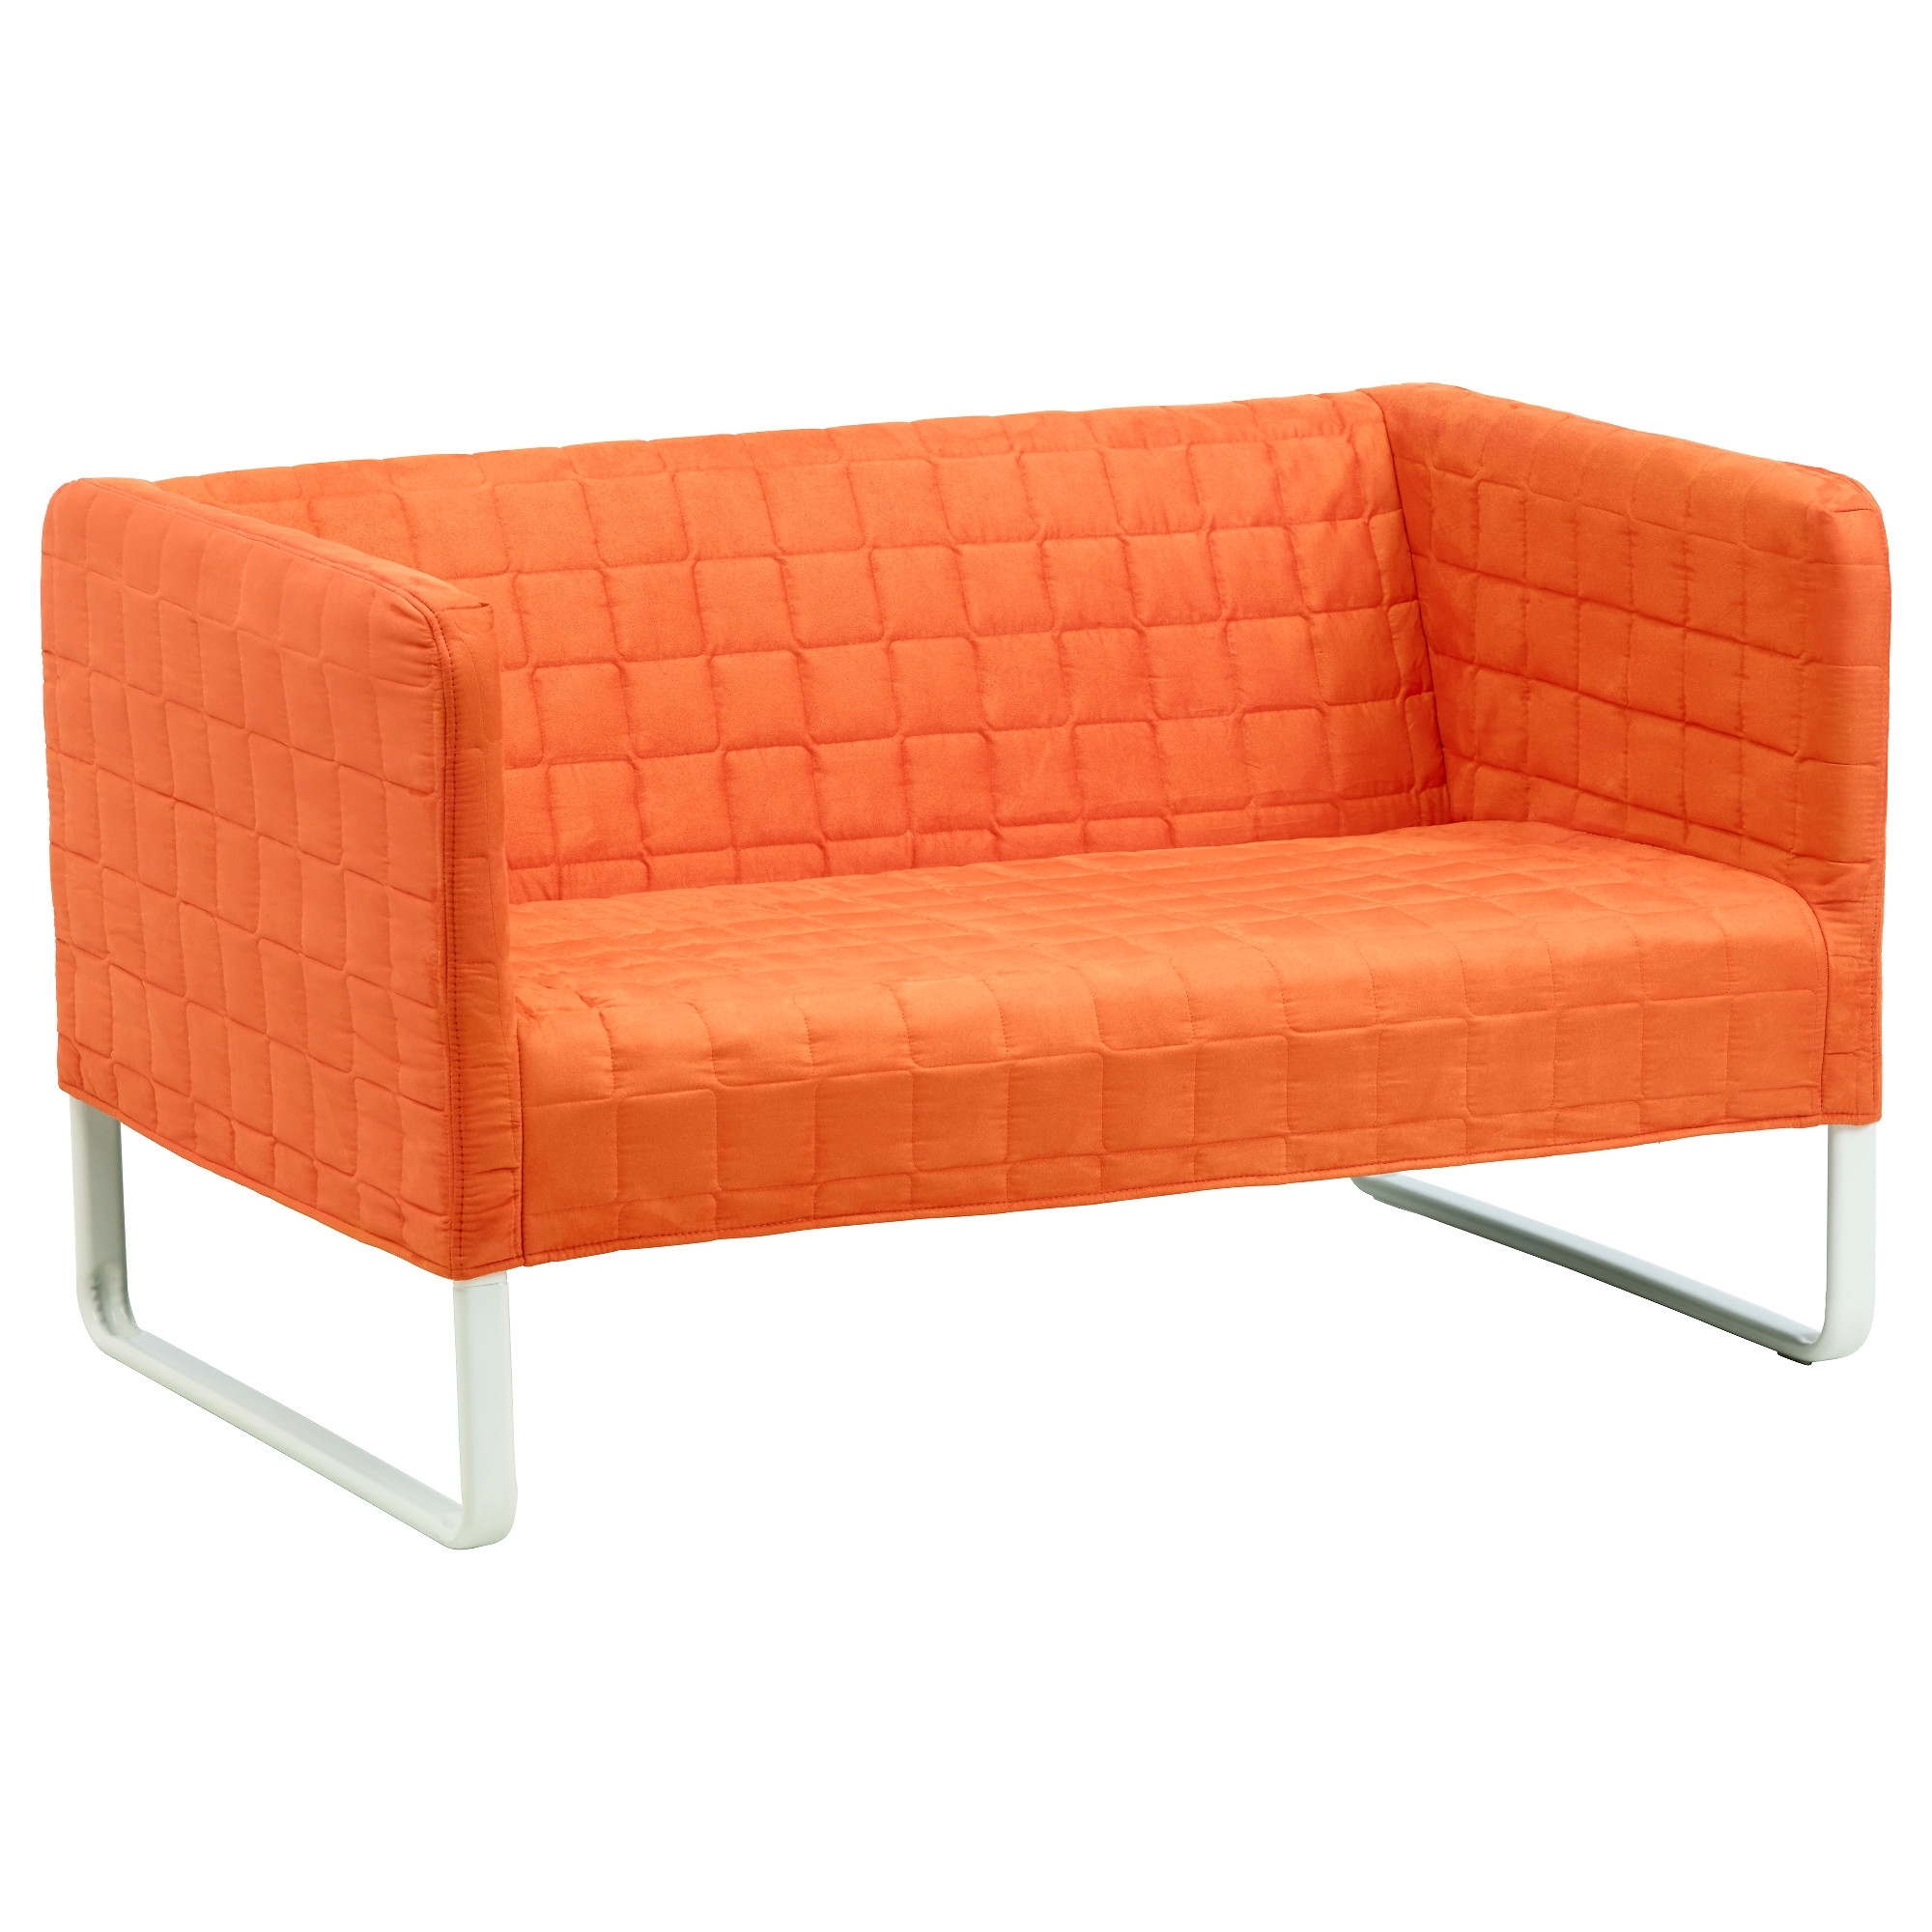 Knopparp 2 Seat Sofa Orange – Ikea In Current Small 2 Seater Sofas (View 3 of 20)